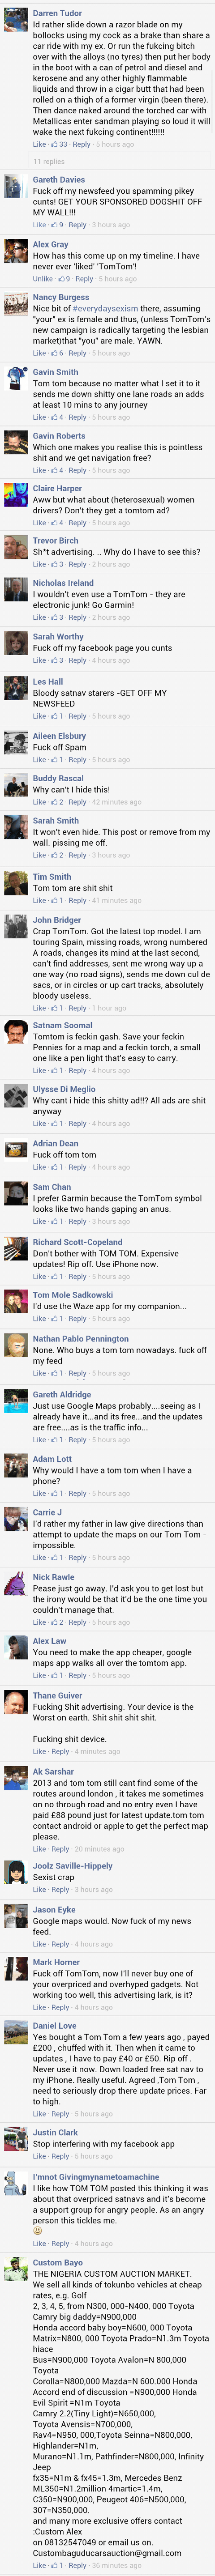 Tom Tom customer revolt